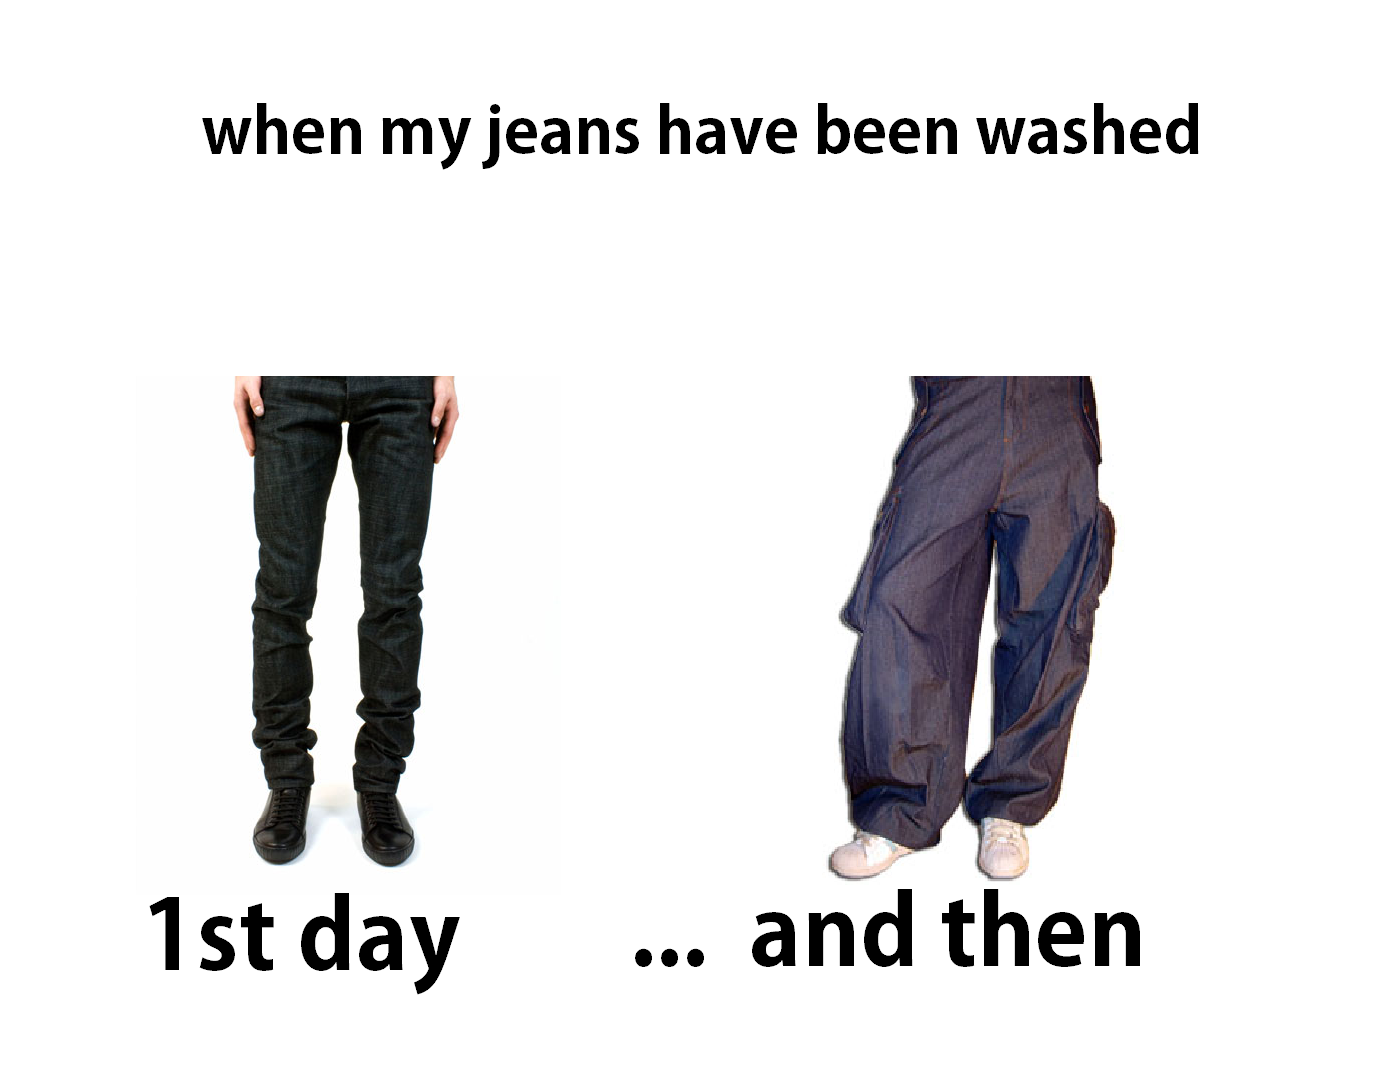 Laundry. aight?. when drjeans have been washed lst day gqq aiaiai: i' t: kii, -iie,,,. hate when that happens